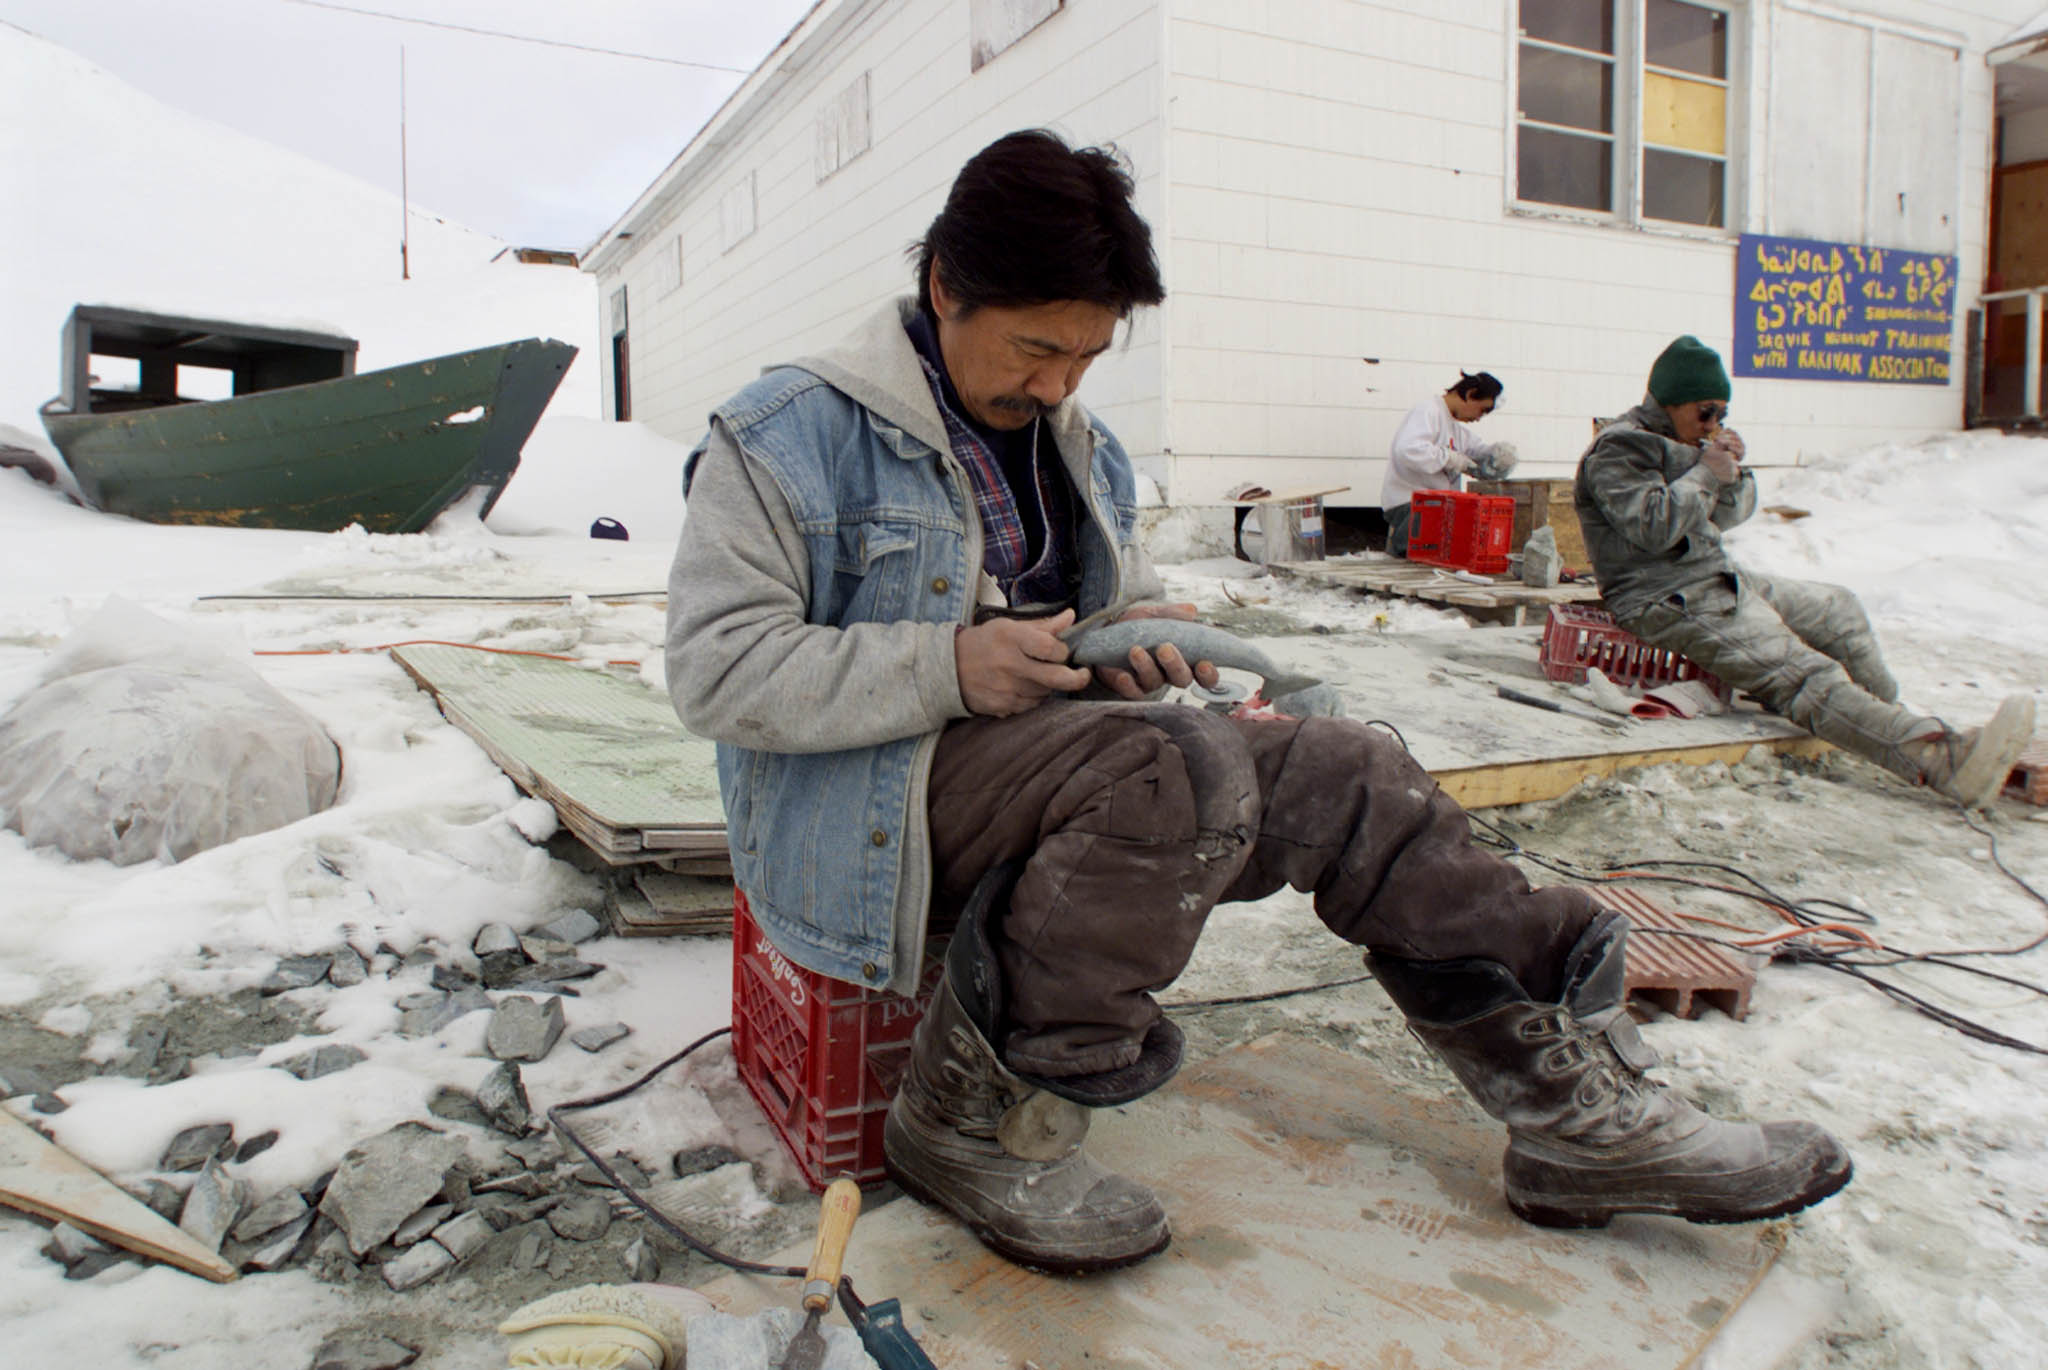 Inuit carvers work on their art on the shore of Frobisher Bay in the arctic town of Iqaluit, March 29. Nunavut, which has a population of 25,000 and covers over two million square kilometers of arctic terrain, will become a new Canadian territory April 1.  SB/MR/HB/WS - RP1DRIKVSFAF